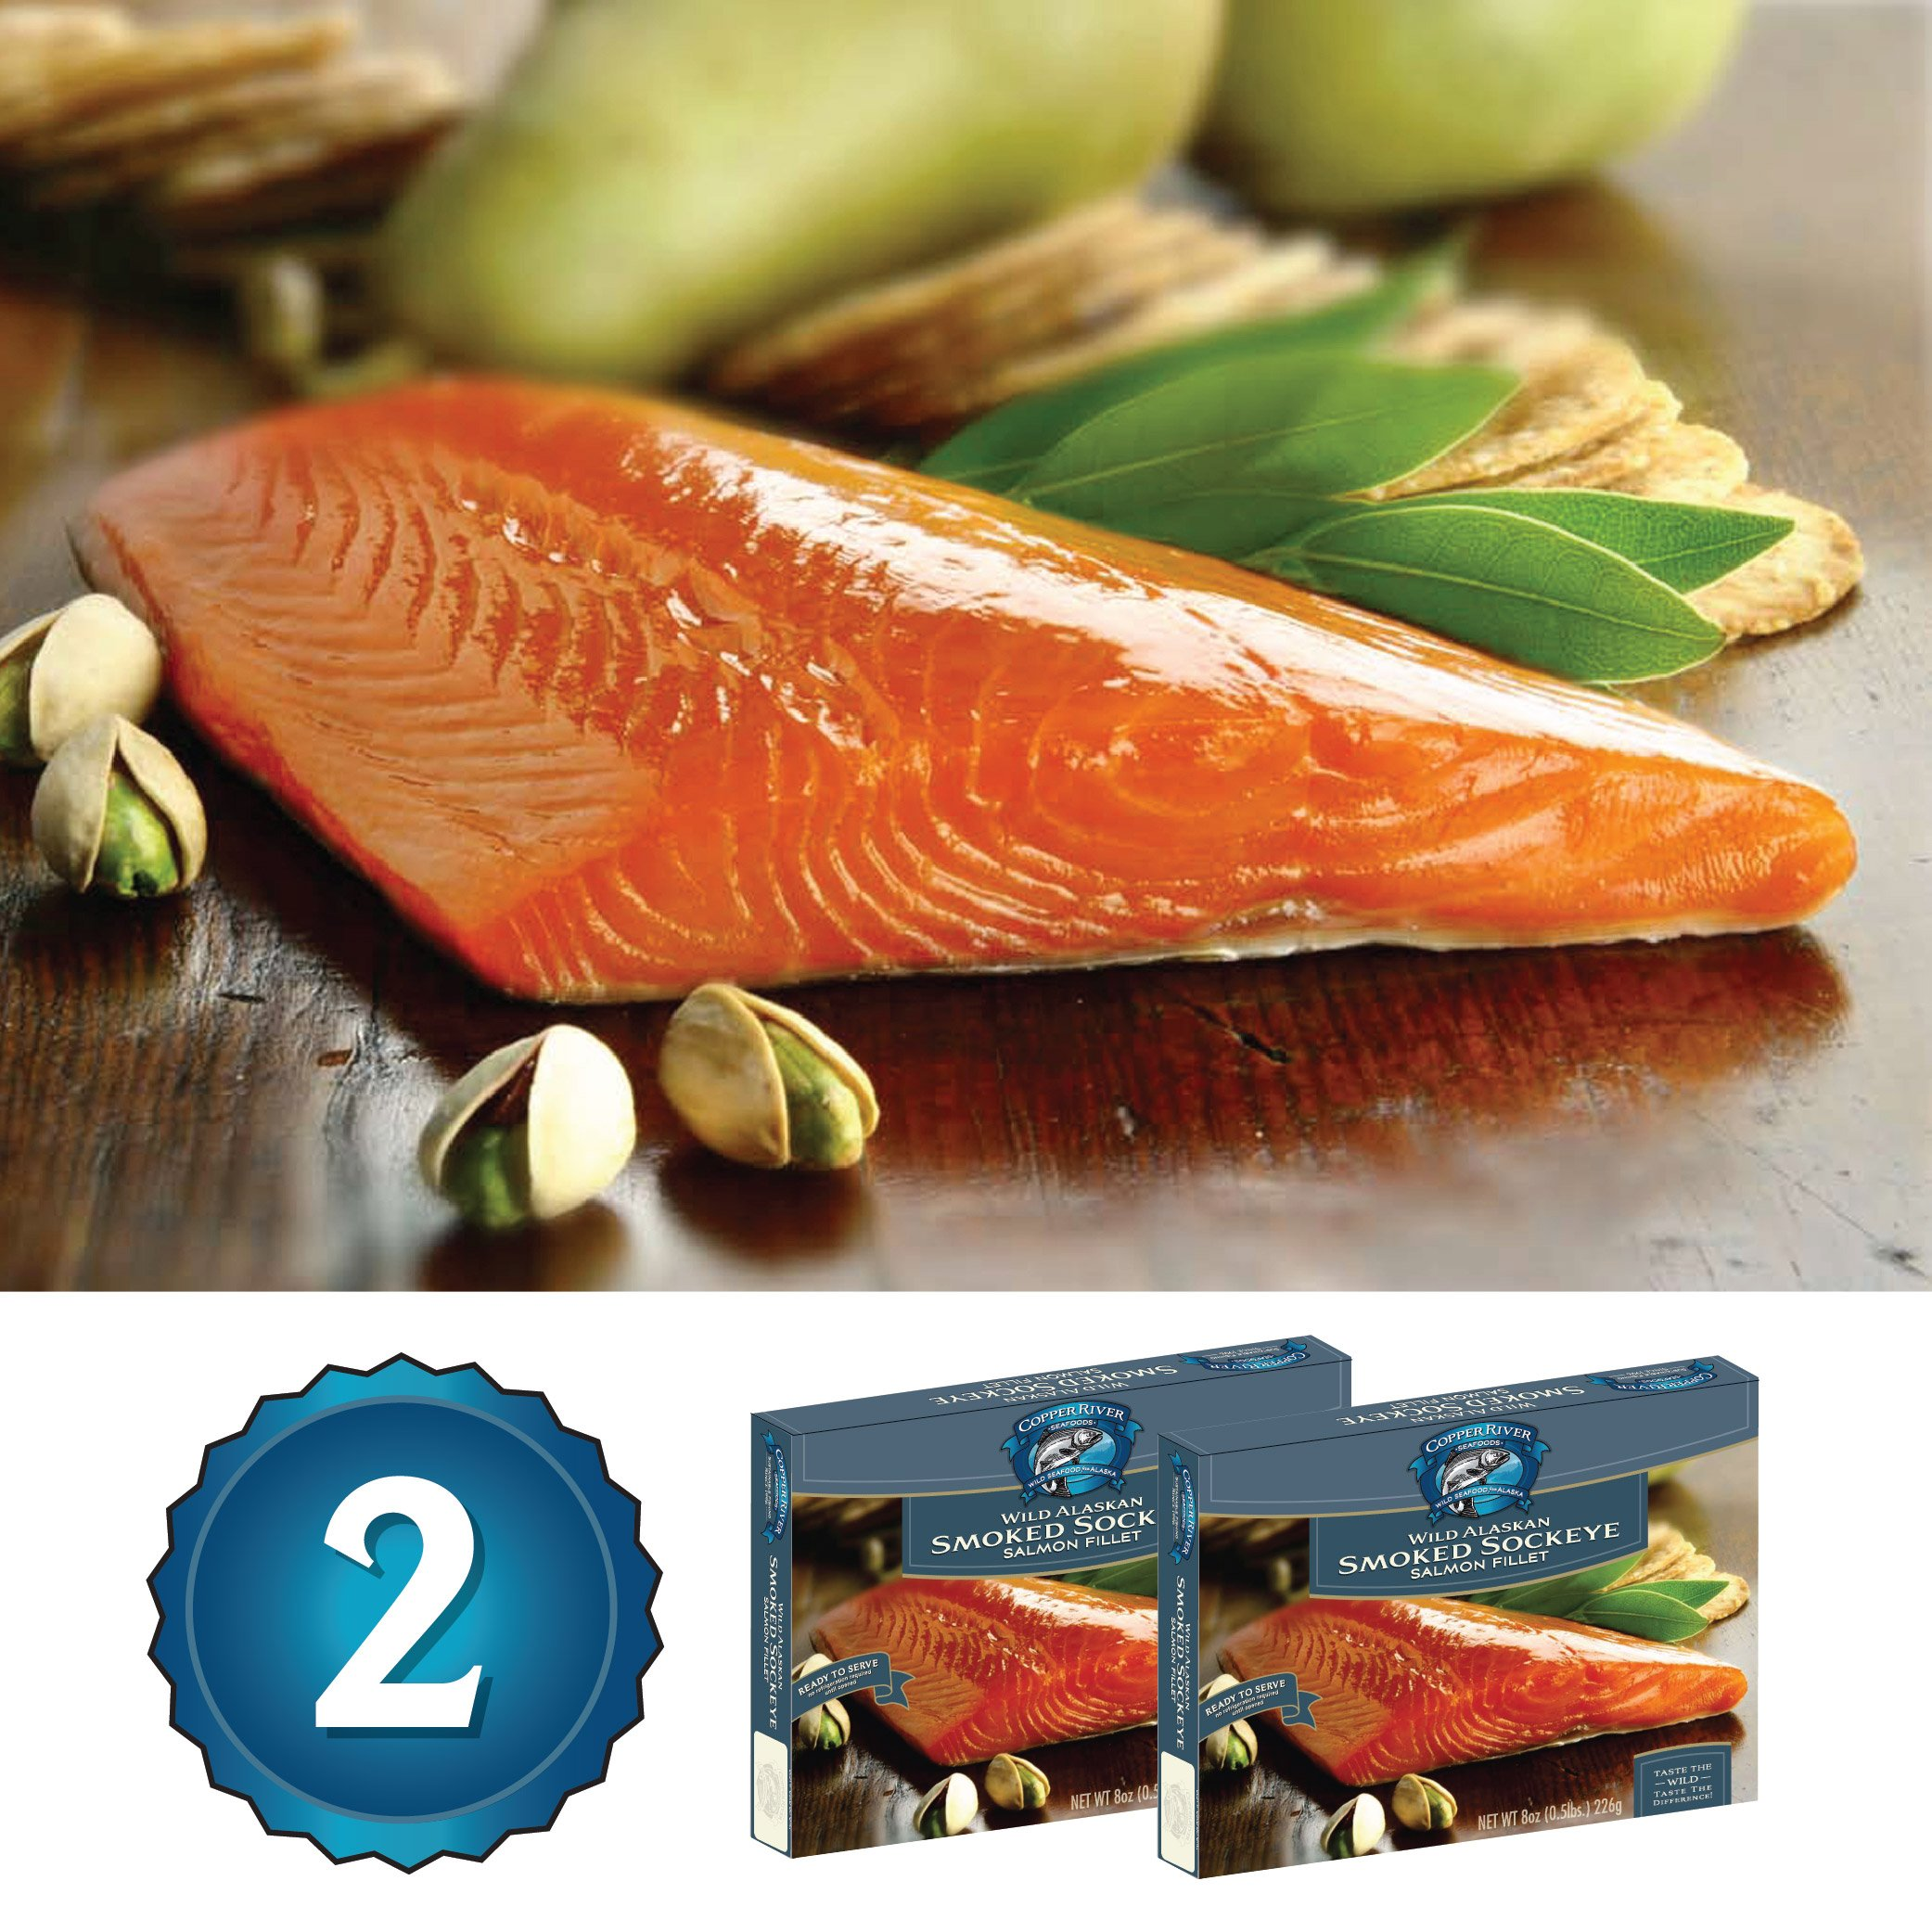 Alaska Smoked Salmon - Copper River Seafoods, Inc. - 2 Pack Gift Set - Alaska Smoked Sockeye Salmon (8 oz. each) by Copper River Seafoods